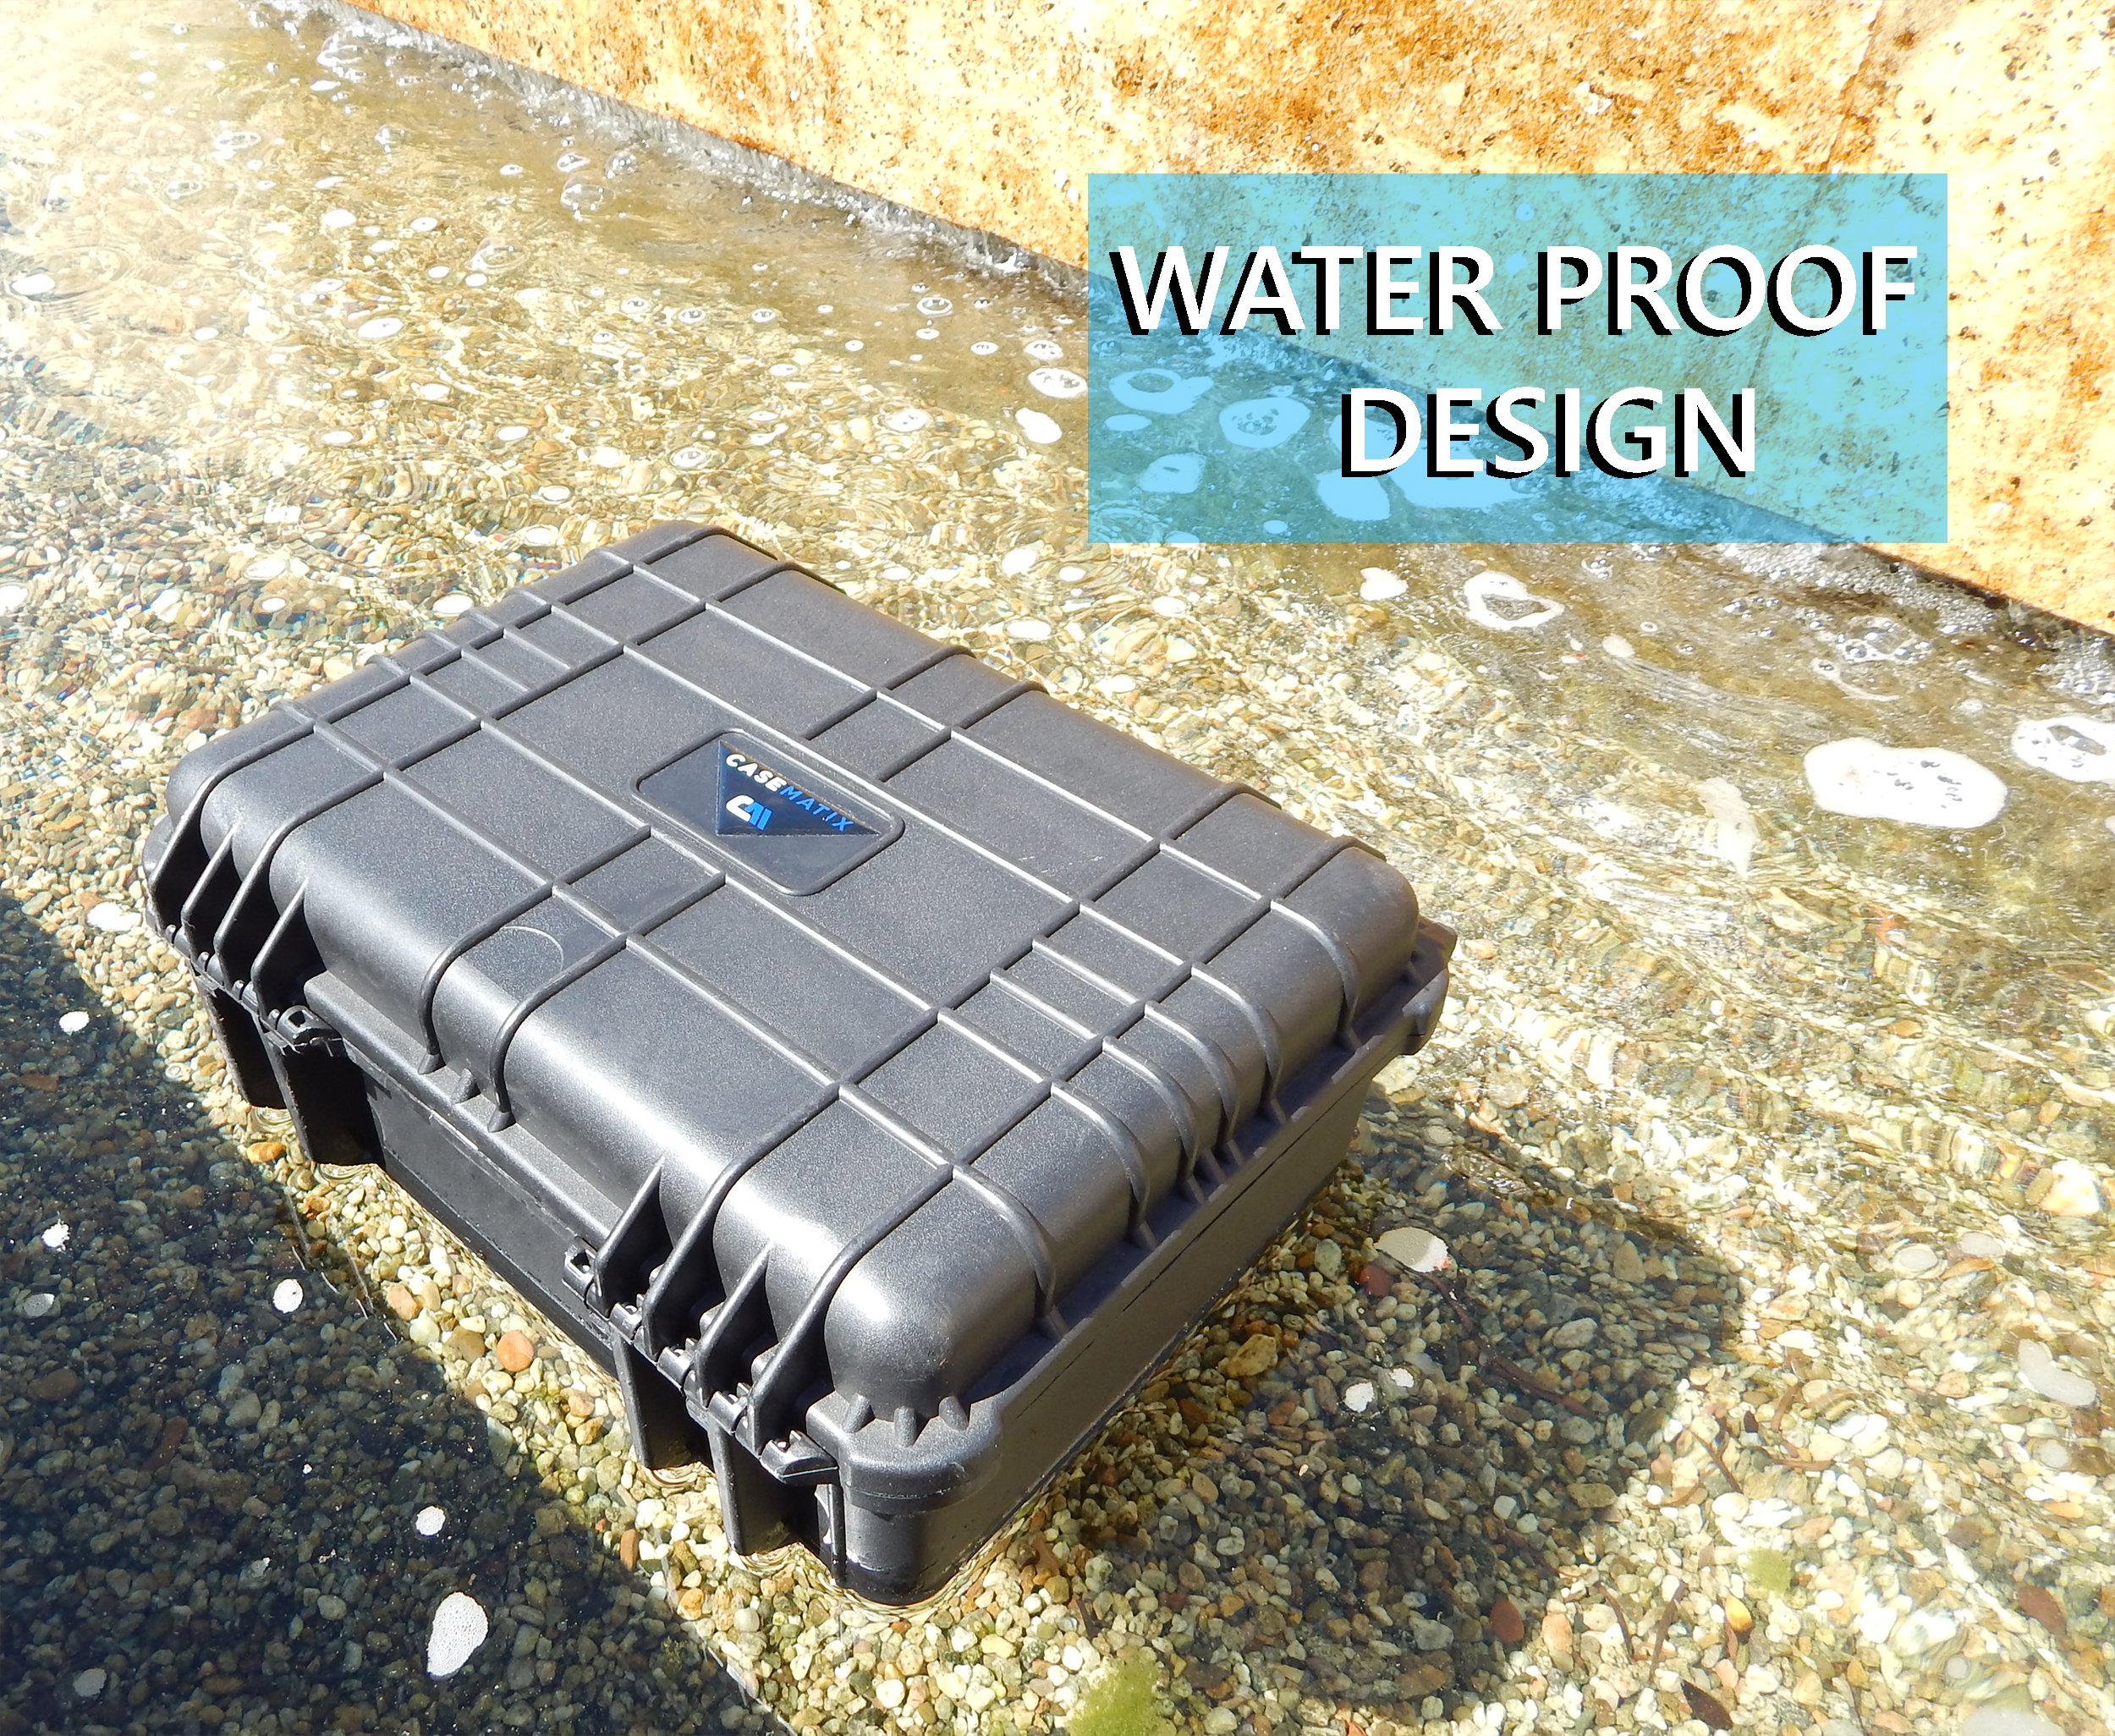 CASEMATIX Waterproof Projector Travel Case For DBPOWER T22 HD Video Projector 2400 Lumens , Remote , HDMI Cable , AV Cable , Power Supply and Accessories by CASEMATIX (Image #2)